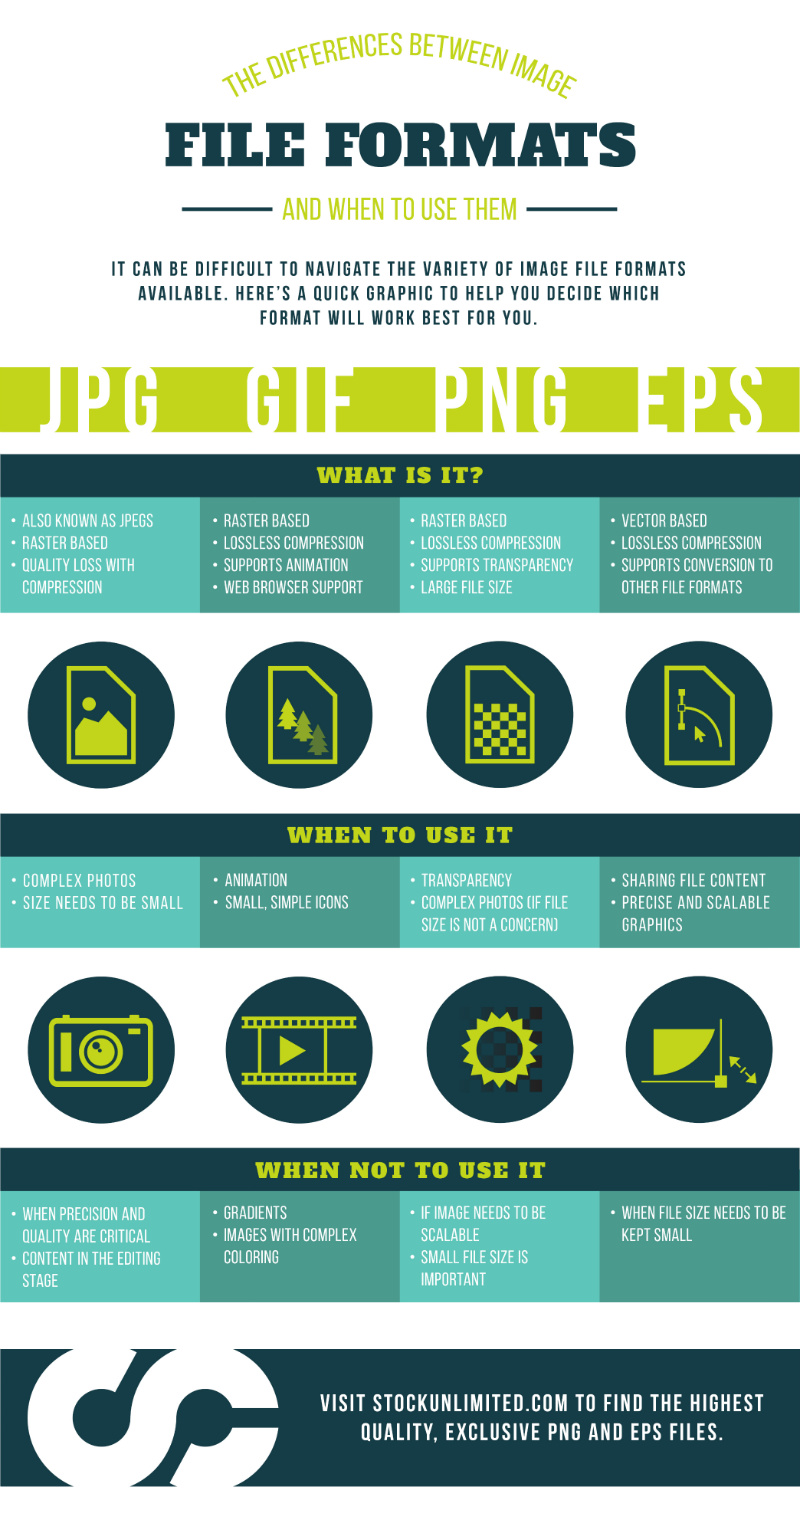 FINAL3_File_Formats_Infographic_800